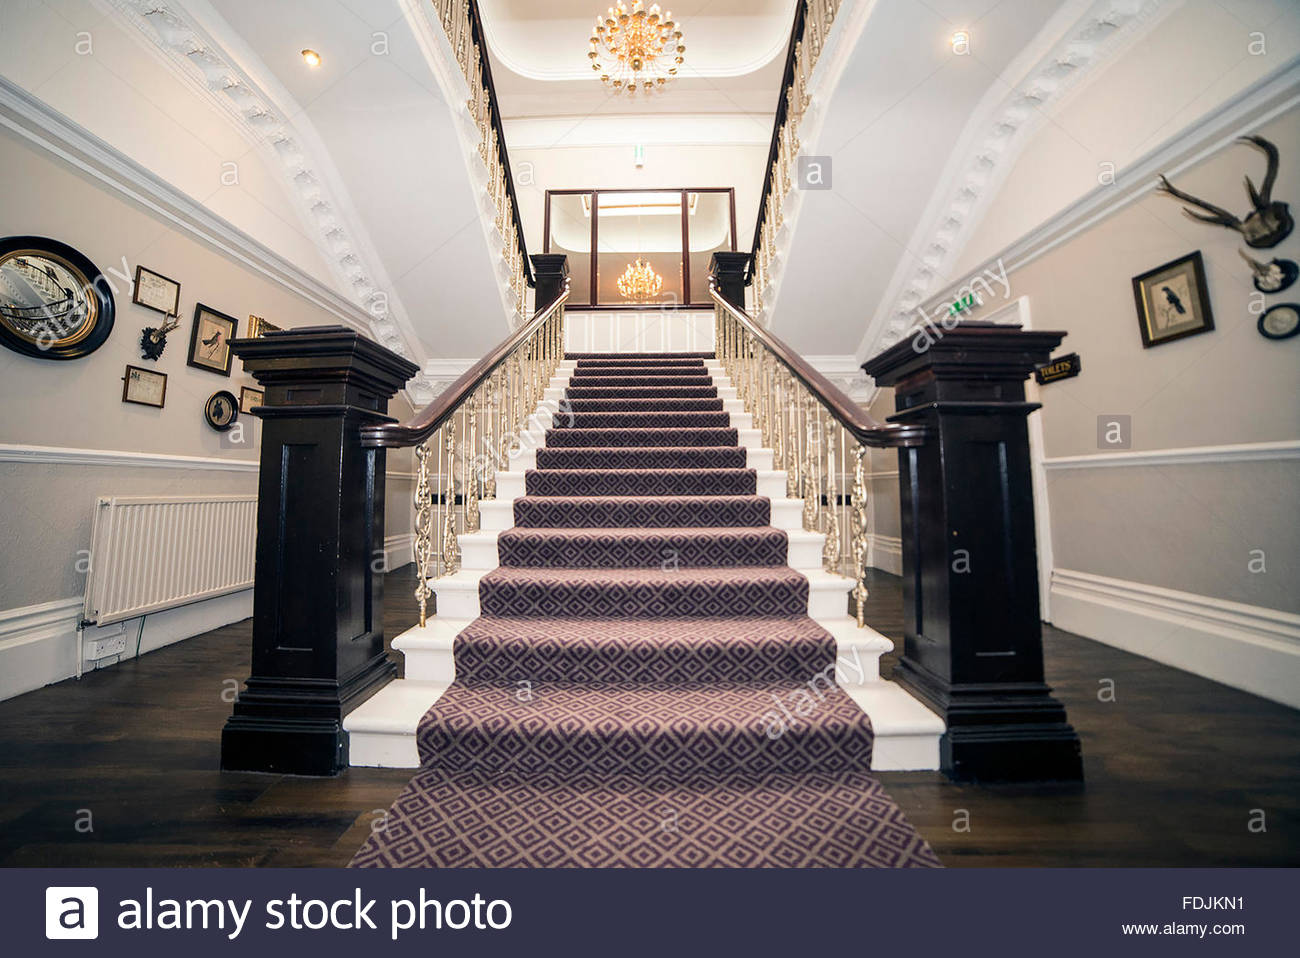 Grand Oak Lobby Staircase Wide Angle - Stock Image